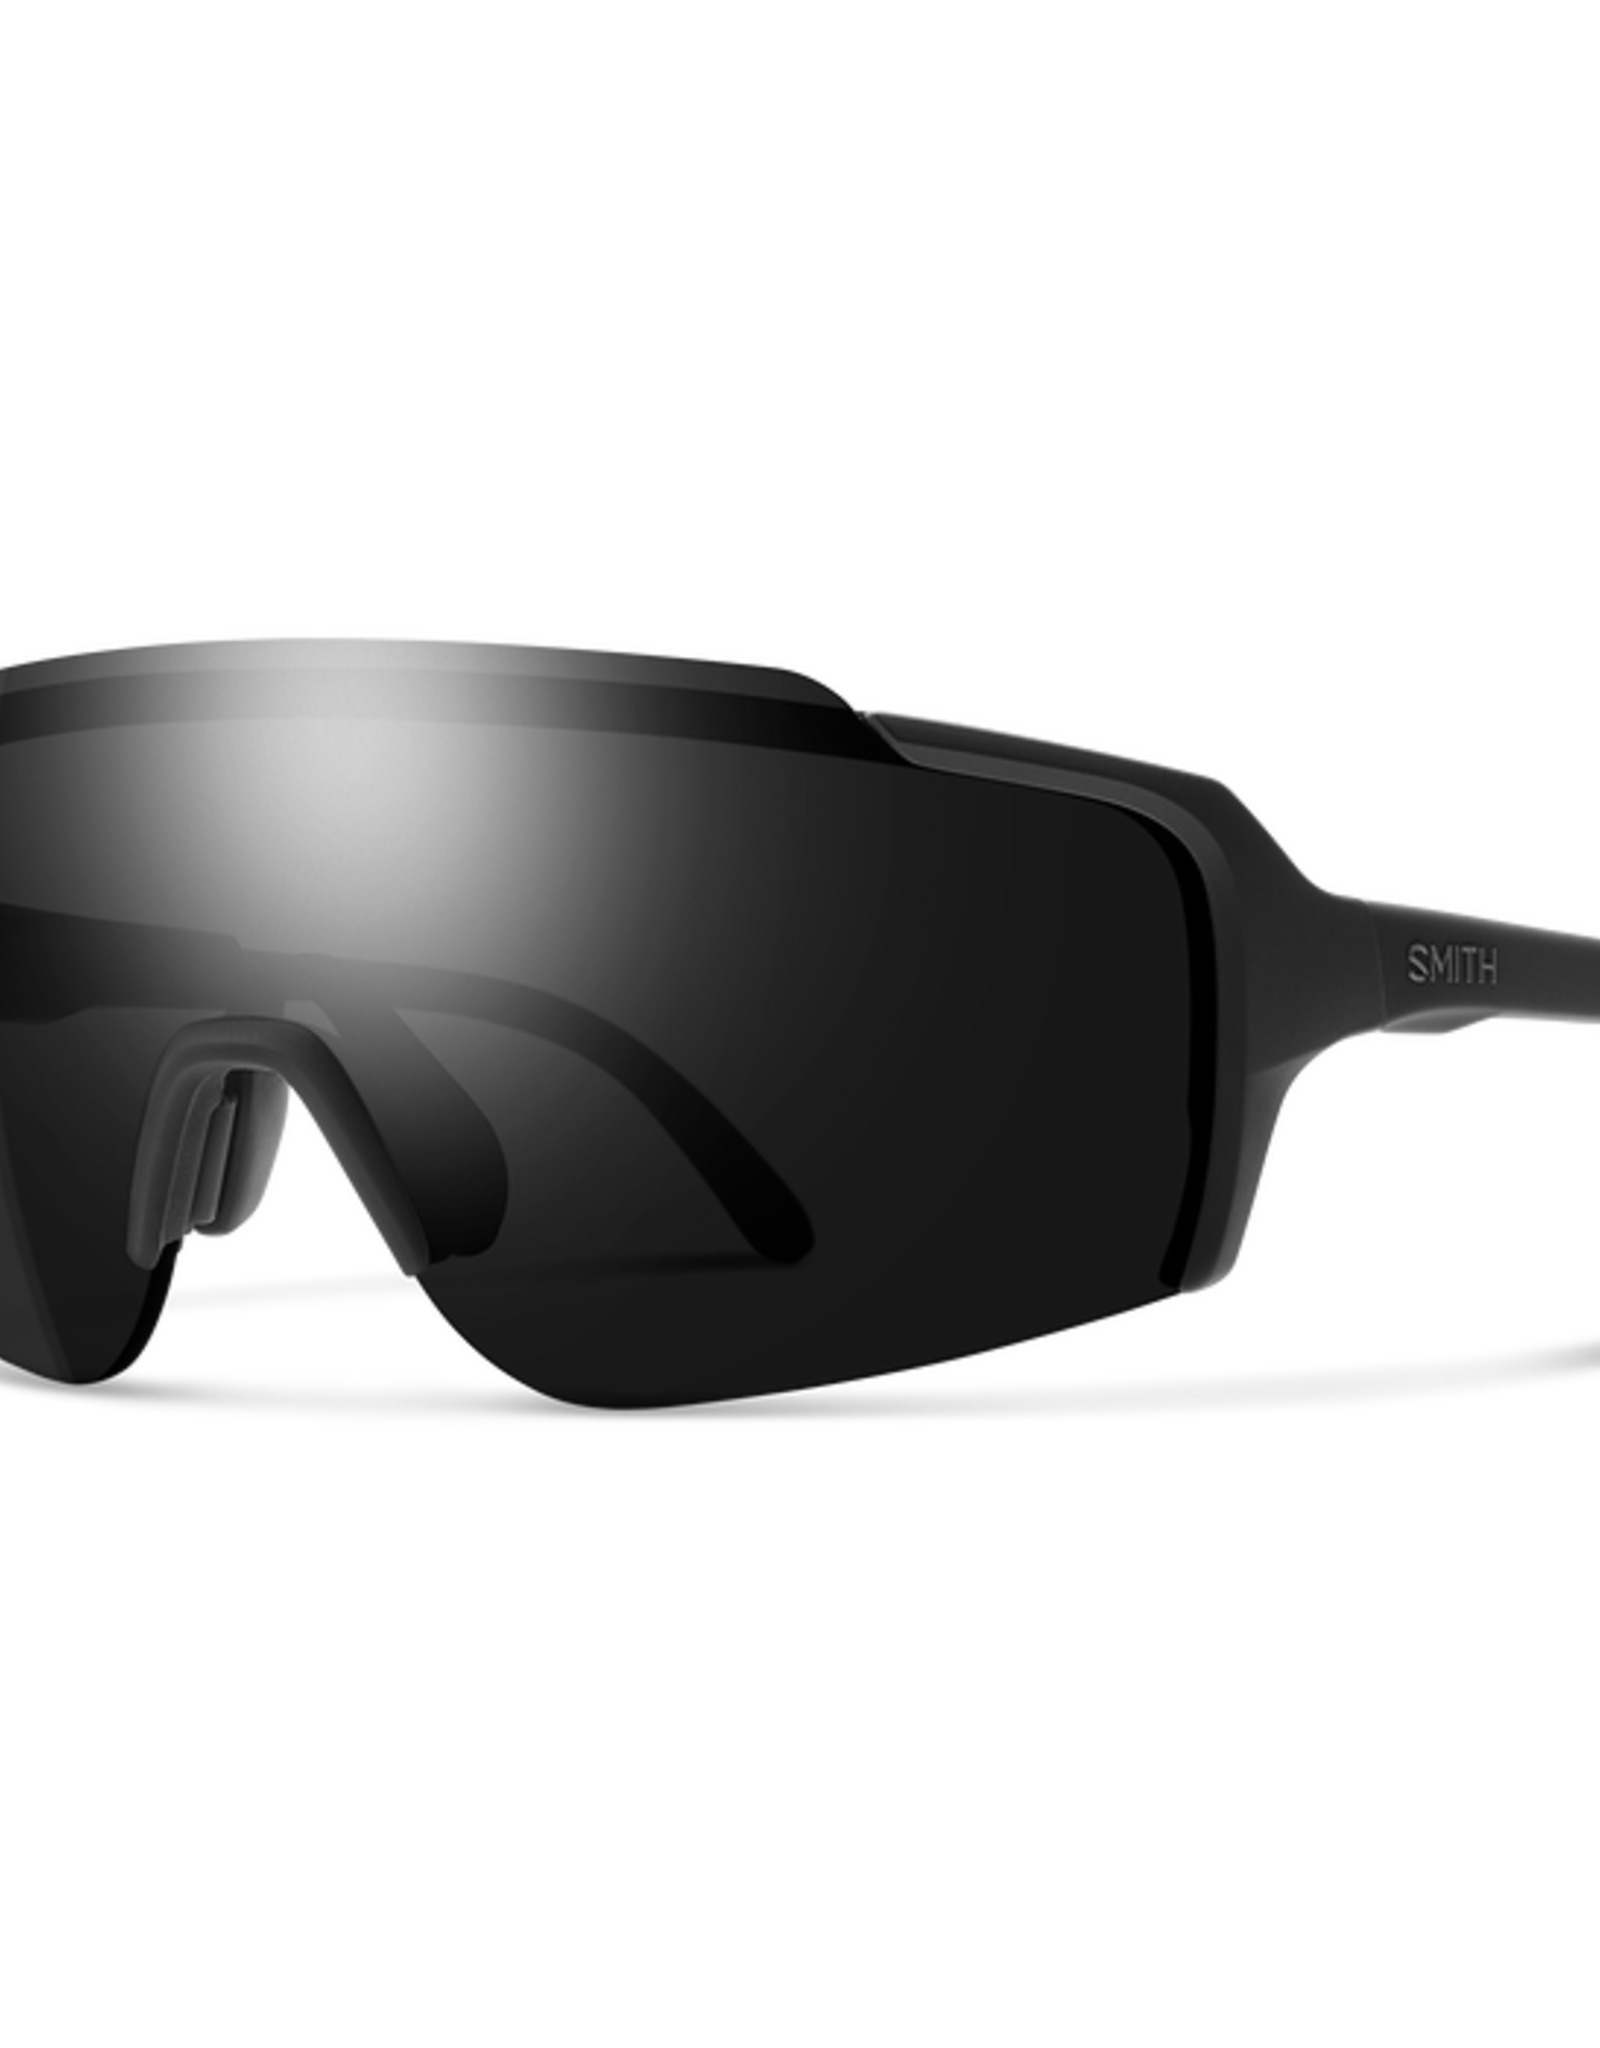 Smith Optics Smith - FLYWHEEL - Matte Black w/ CP Black